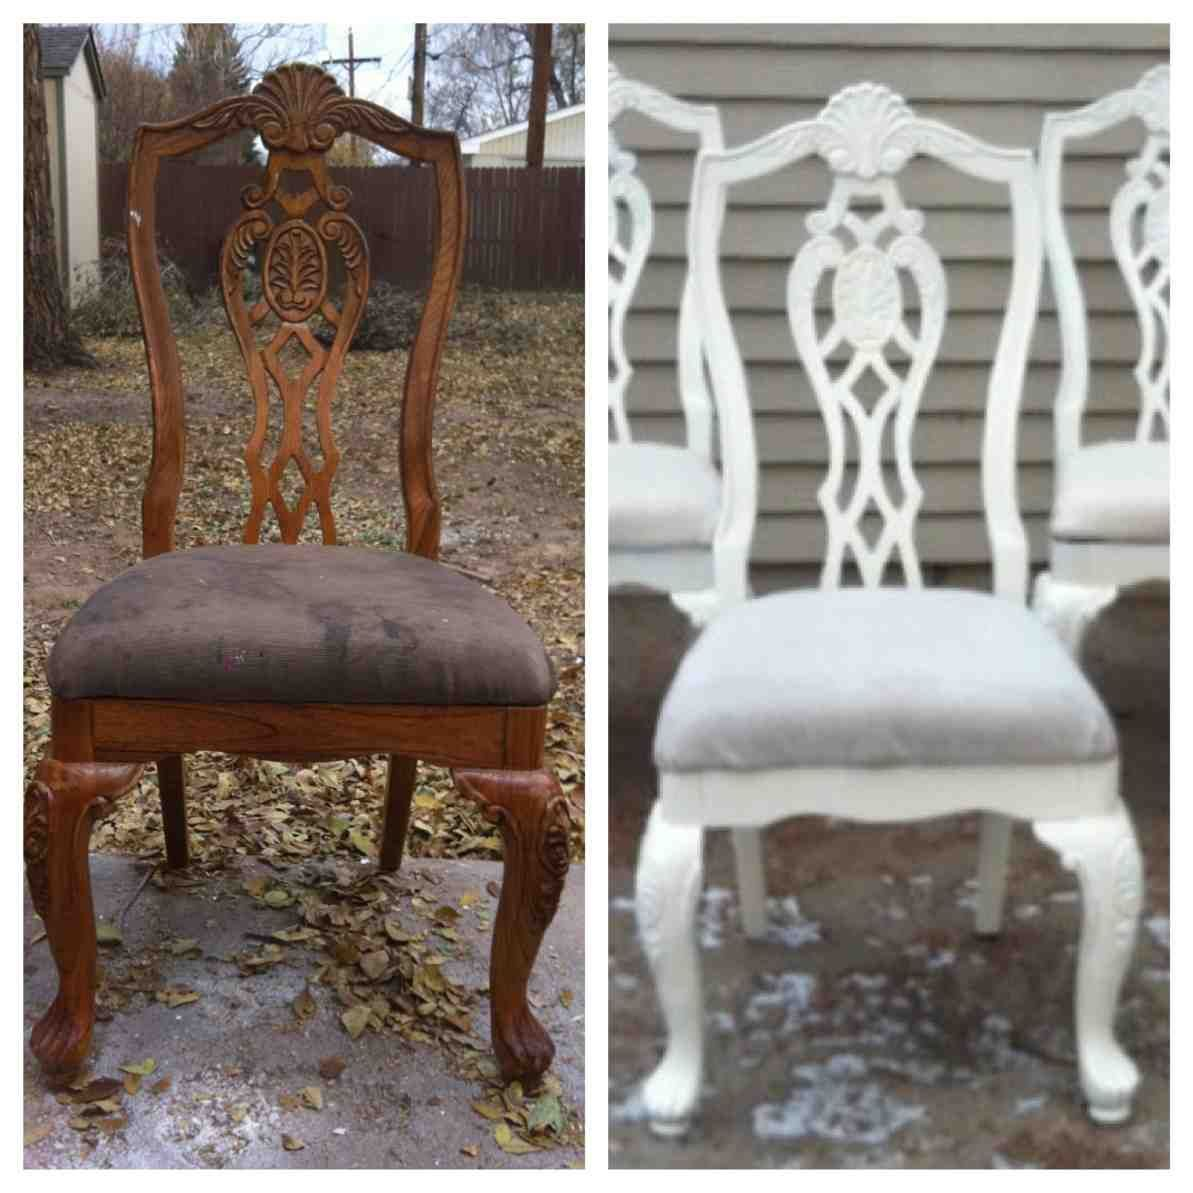 Dining Chair Seat Replacement  Better Dining Chairs  Pinterest Fascinating Replacement Seats For Dining Room Chairs Inspiration